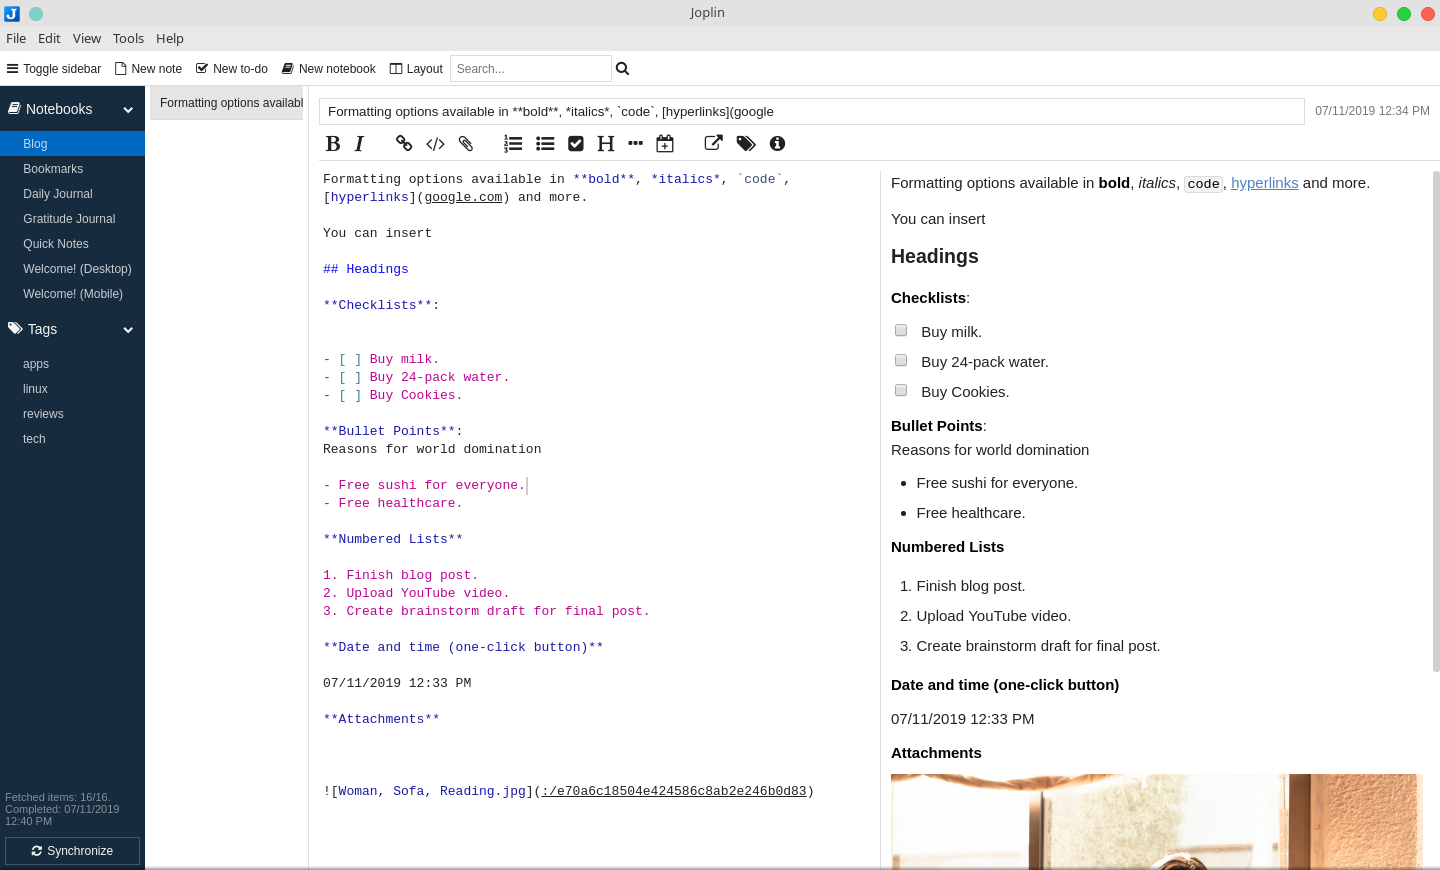 A Look At Joplin: A Free Evernote Alternative For Linux, Mac